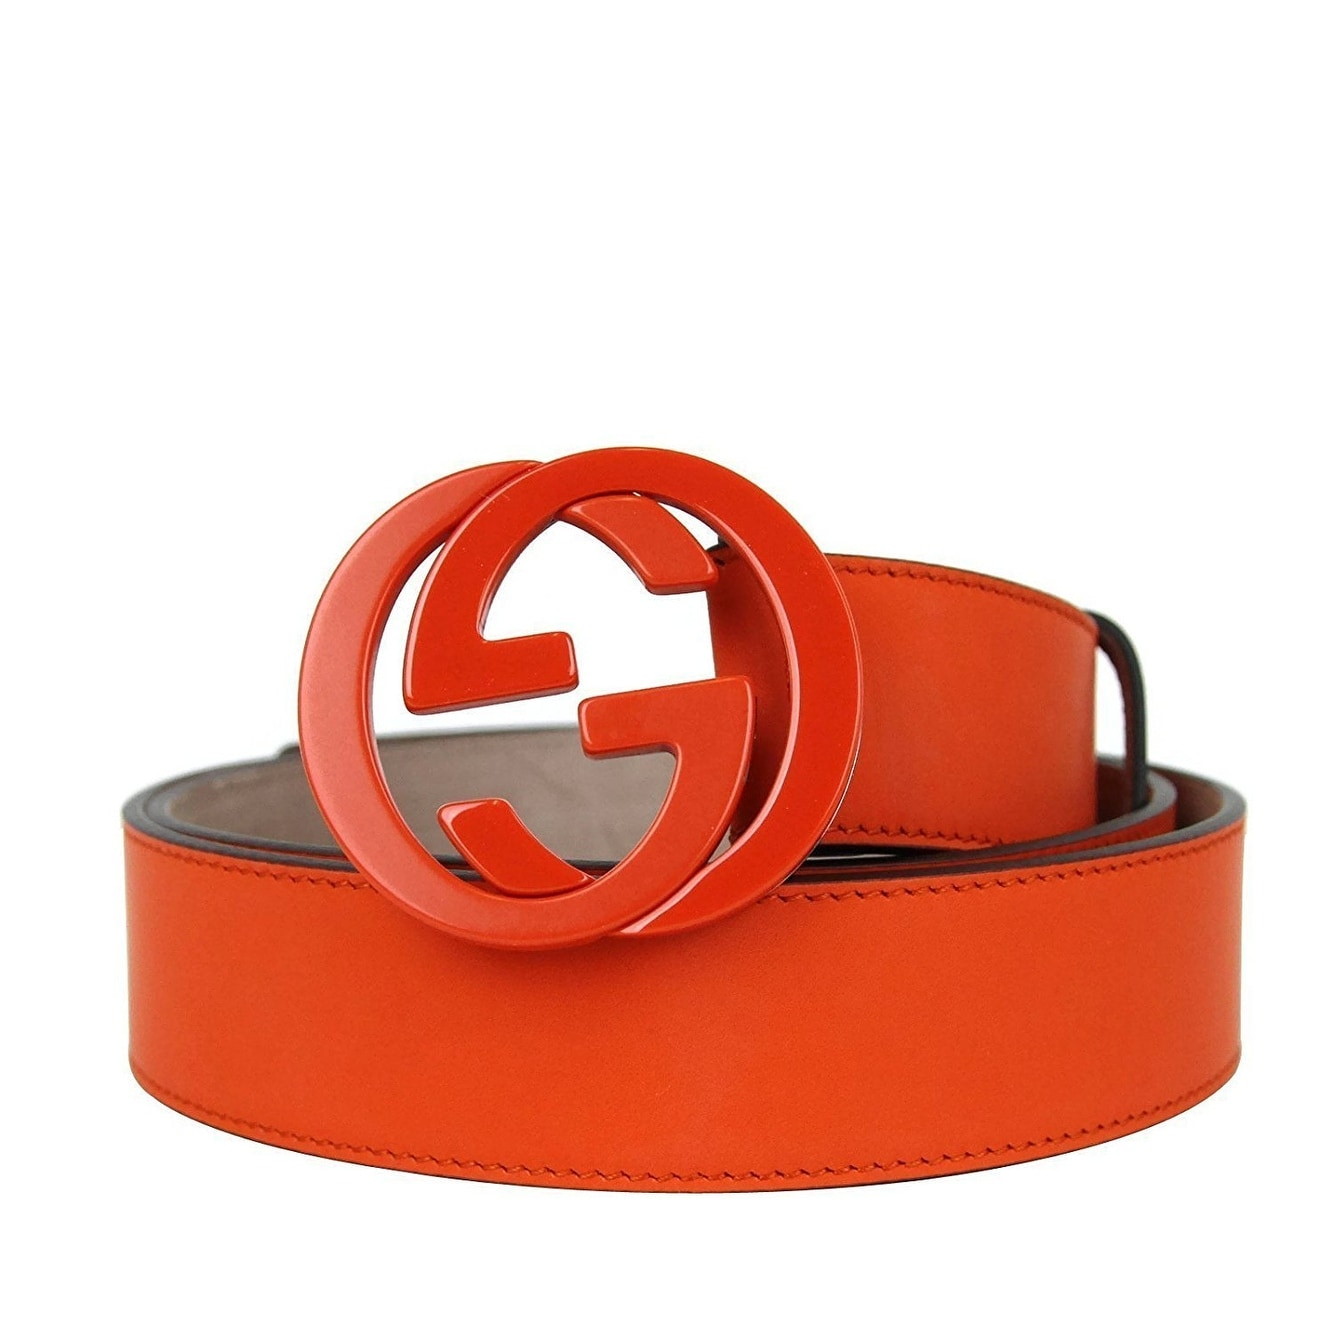 a8f304772fe Shop Gucci Men s Orange Leather Interlocking G Buckle Belt 223891 7519 (110    44) - 110   44 - Free Shipping Today - Overstock - 25752847